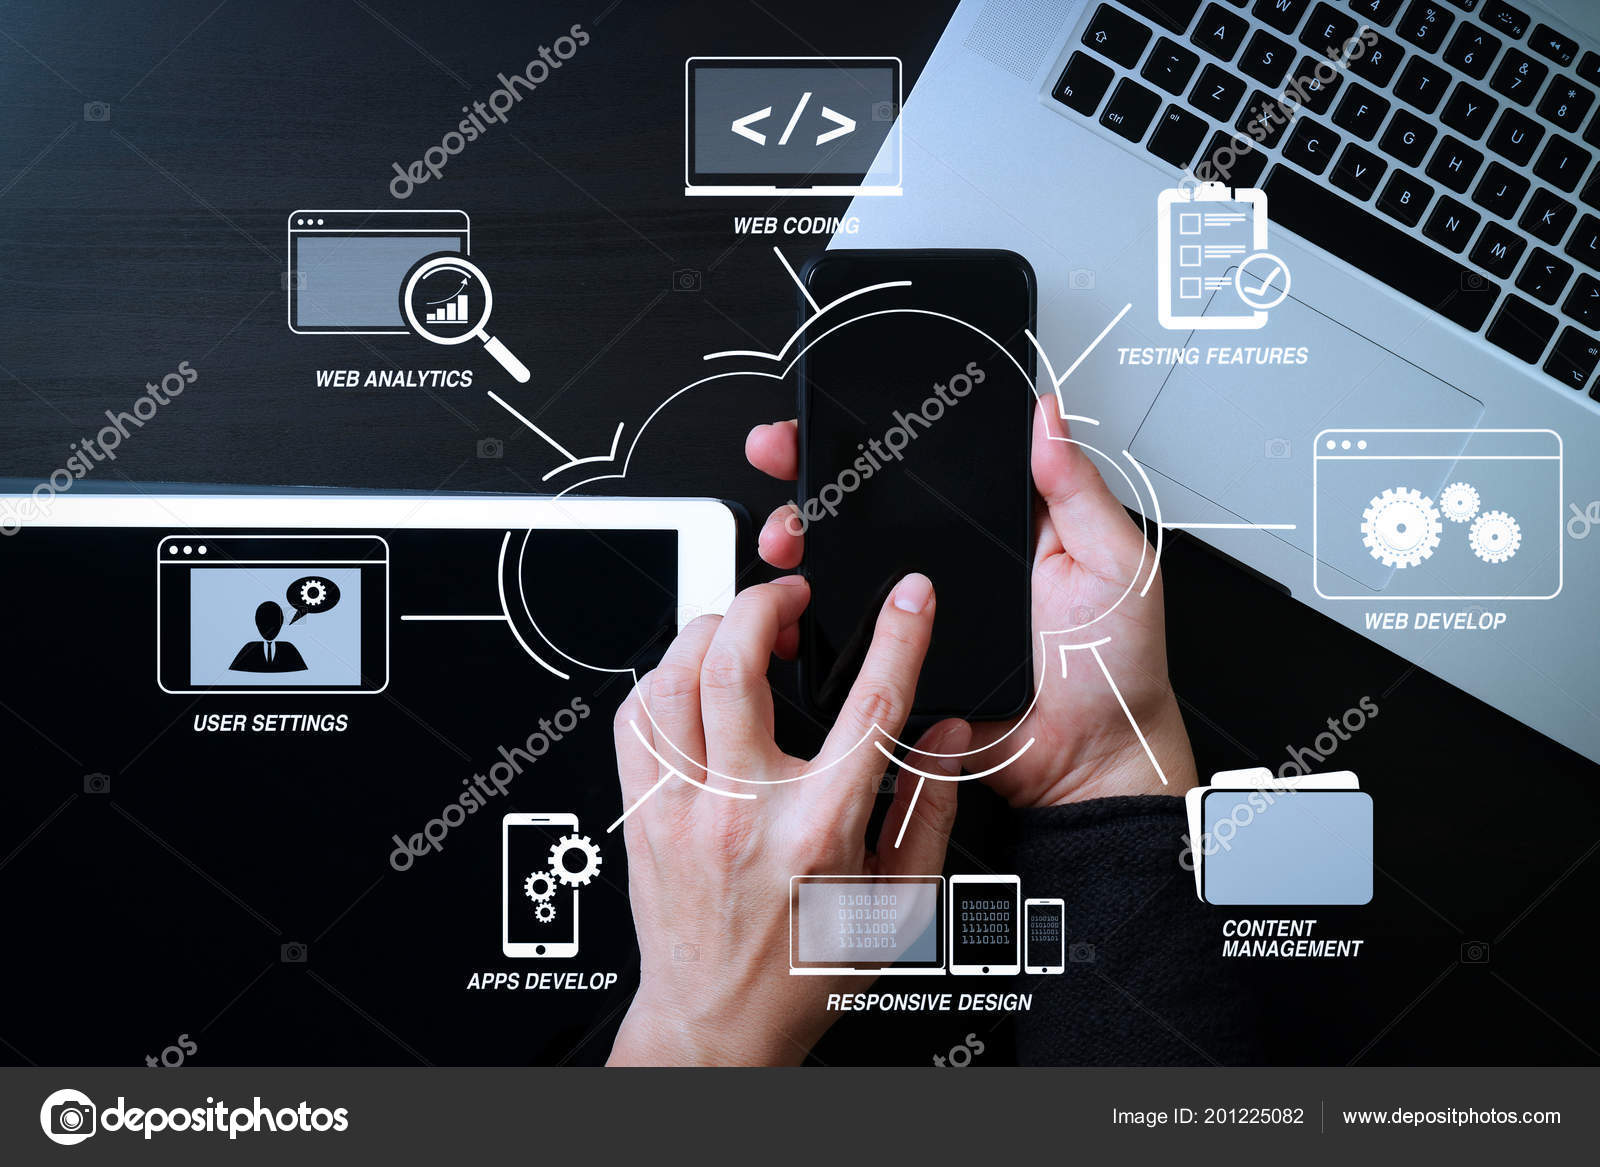 Developing Programming Coding Technologies Website Design Virtual Internetdiagram2jpg And With In Diagramcyber Security Internet Networking Concept